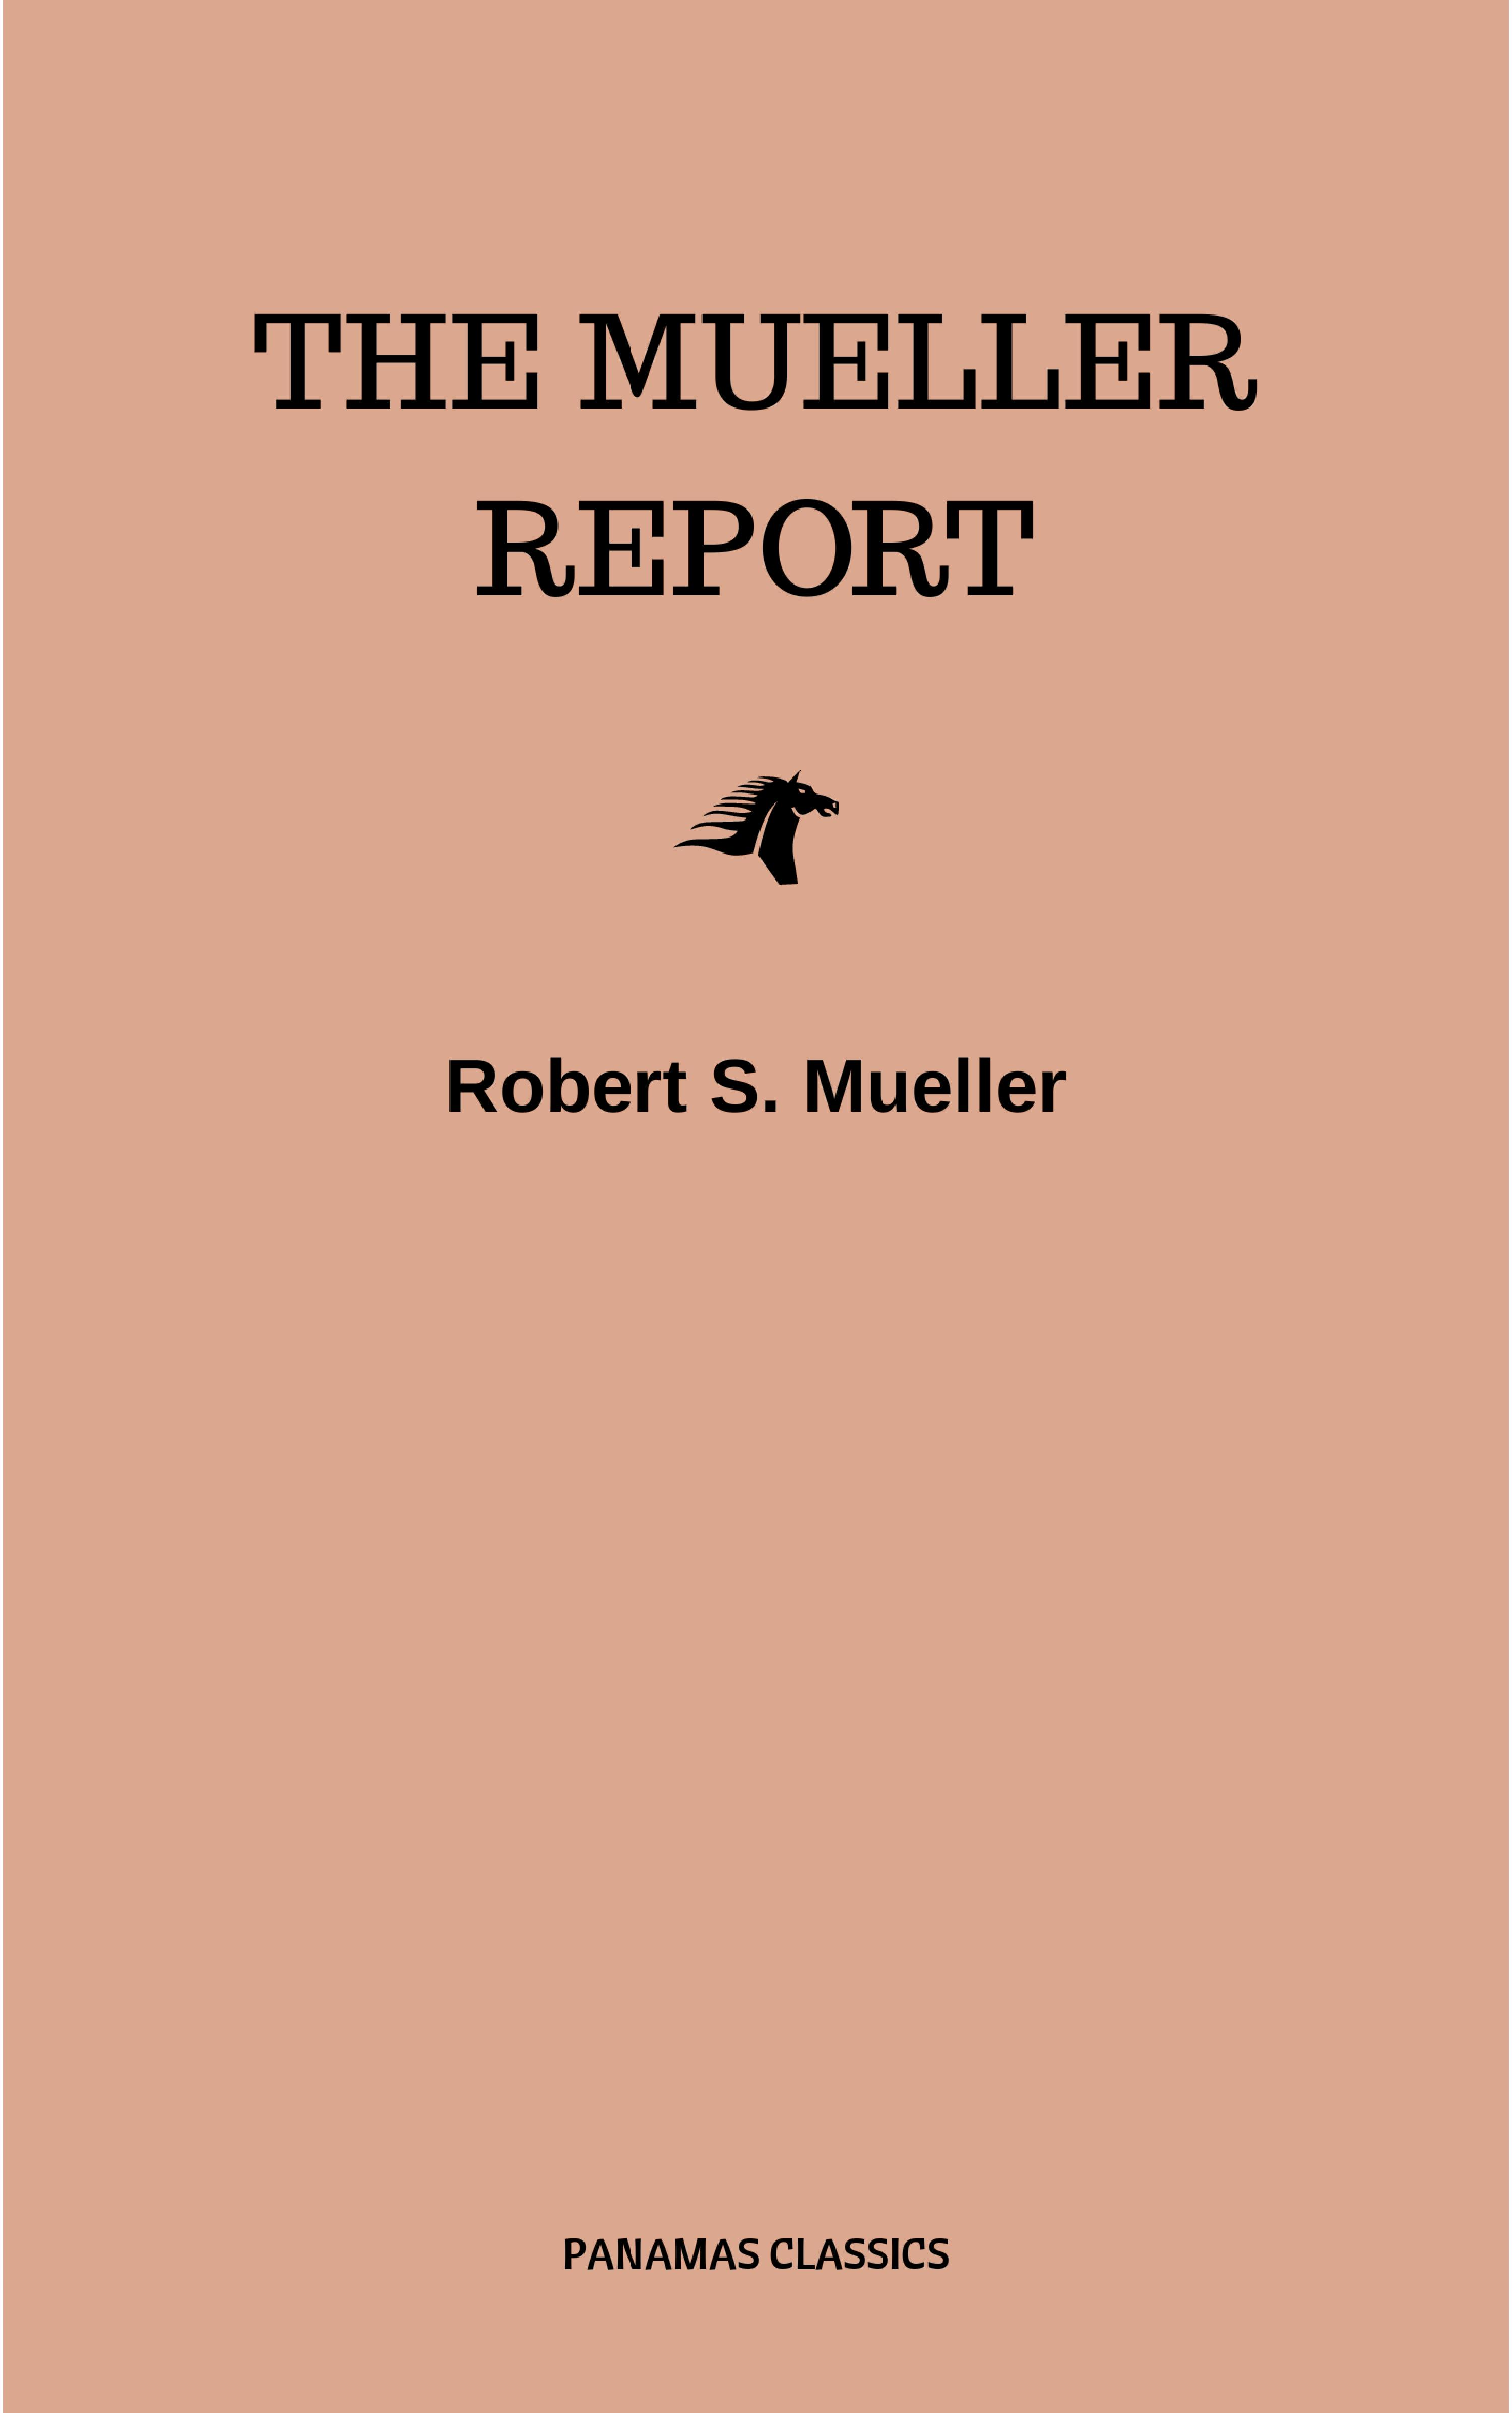 Robert S. Mueller The Mueller Report: Final Special Counsel Report of President Donald Trump and Russia Collusion